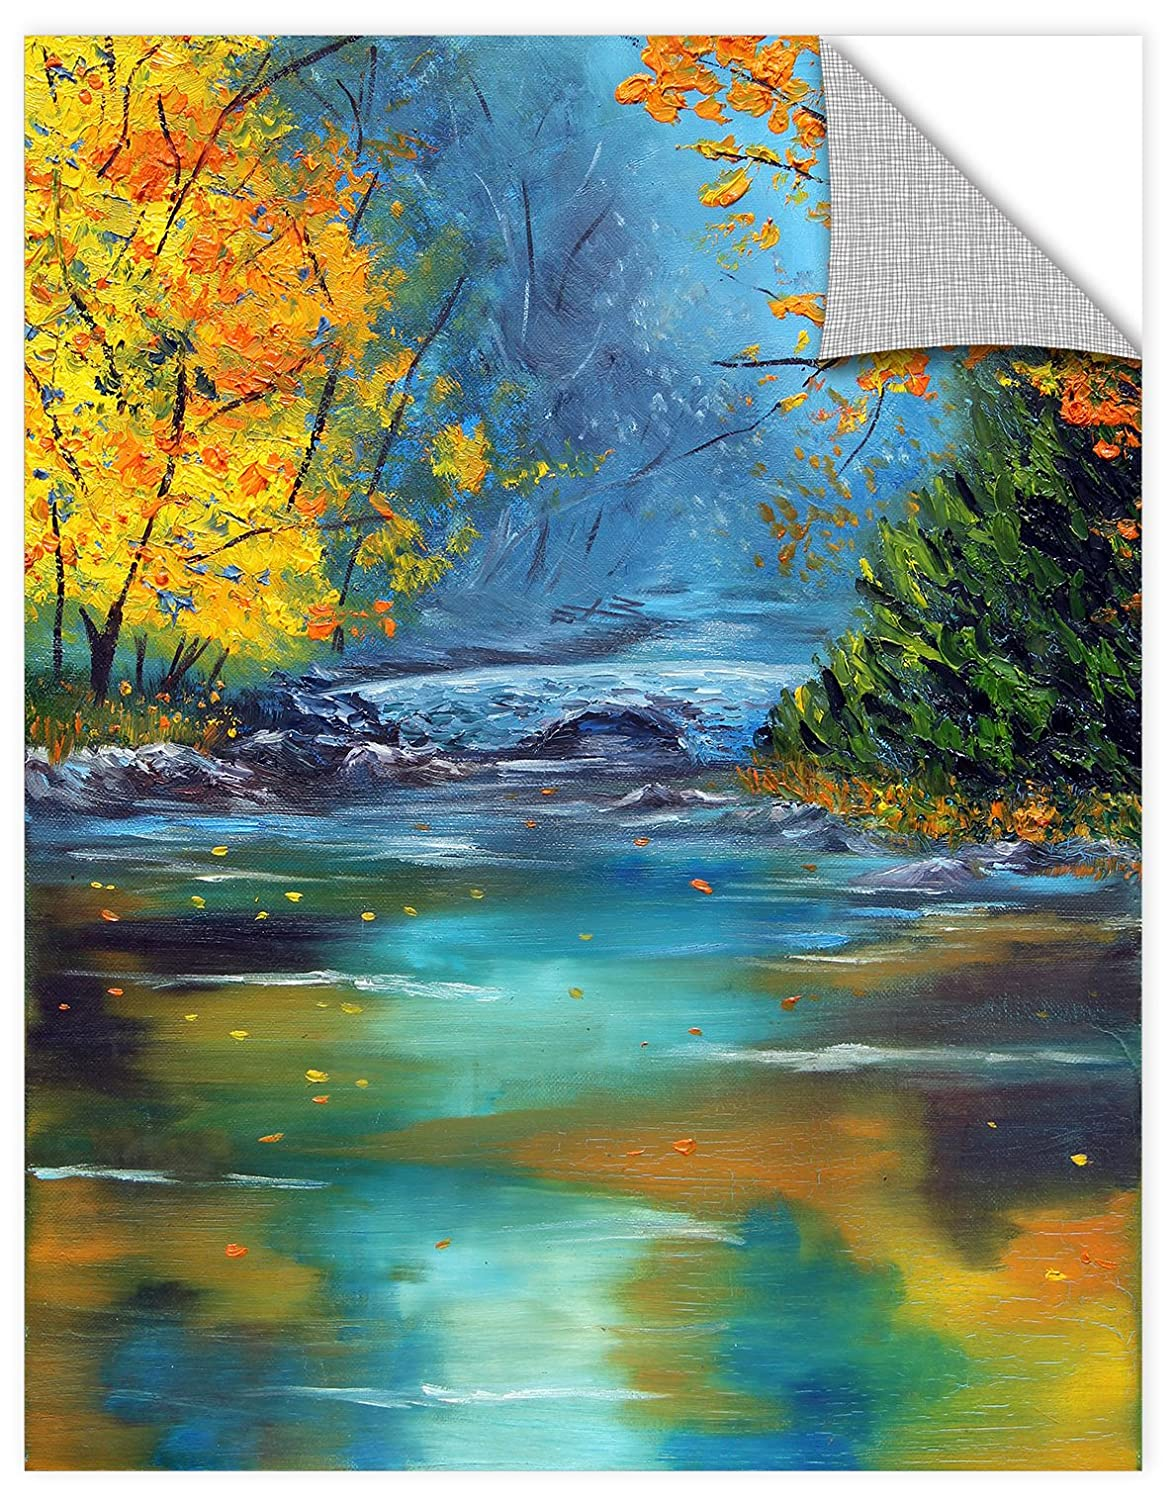 18 x 24 ArtWall 0tro023a1824p Meaghan Troups Assurance Removable Wall Art Mural